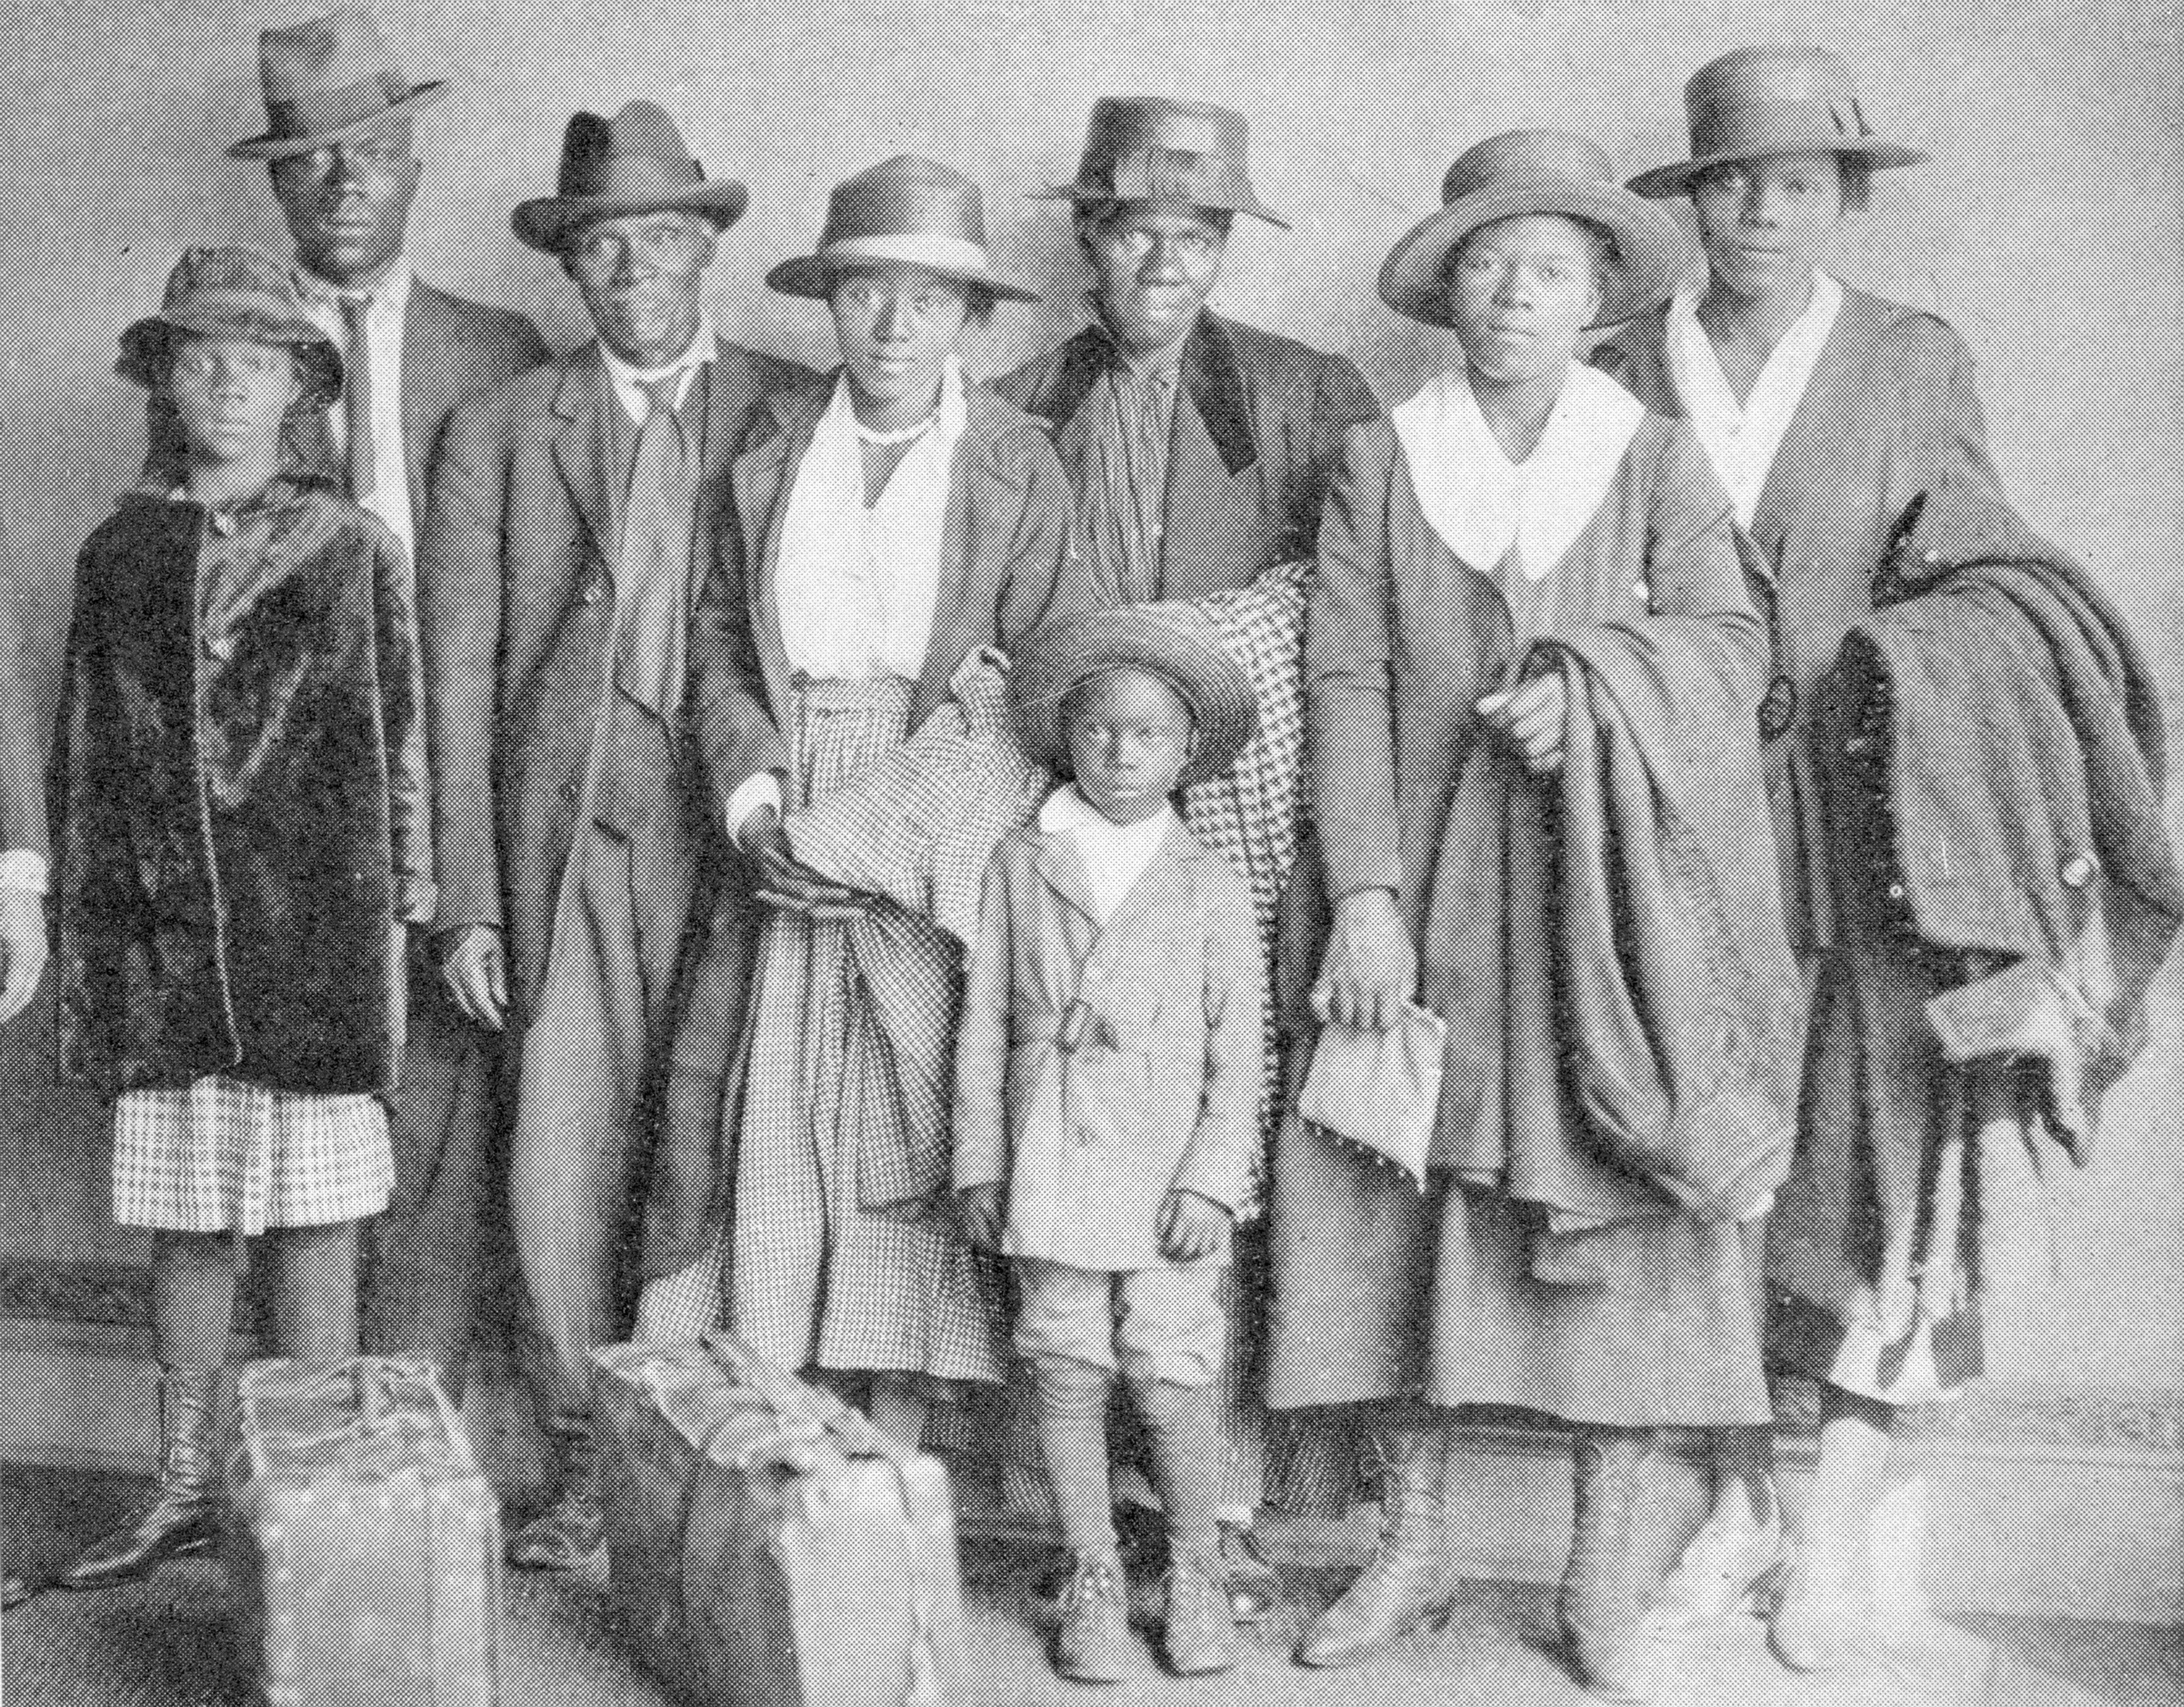 Lost White Card Nsw Great Migration Shortened Lives Of Blacks Who Fled Jim